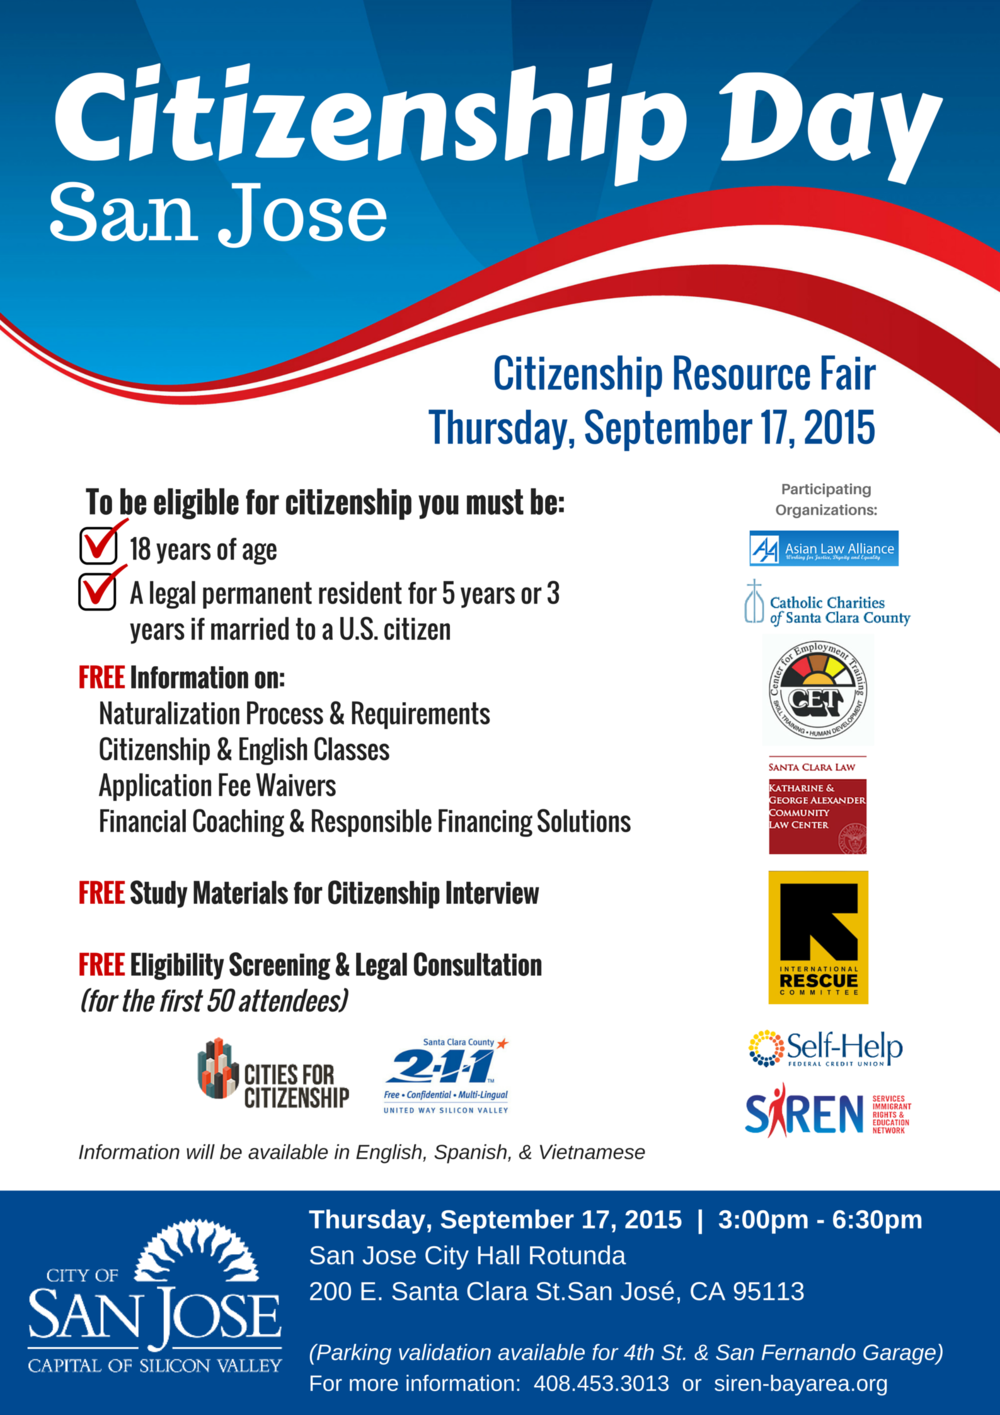 National Voter Registration Day >> Citizenship Day San Jose: Citizenship Resource Fair — SIREN | Services, Immigrant Rights, and ...